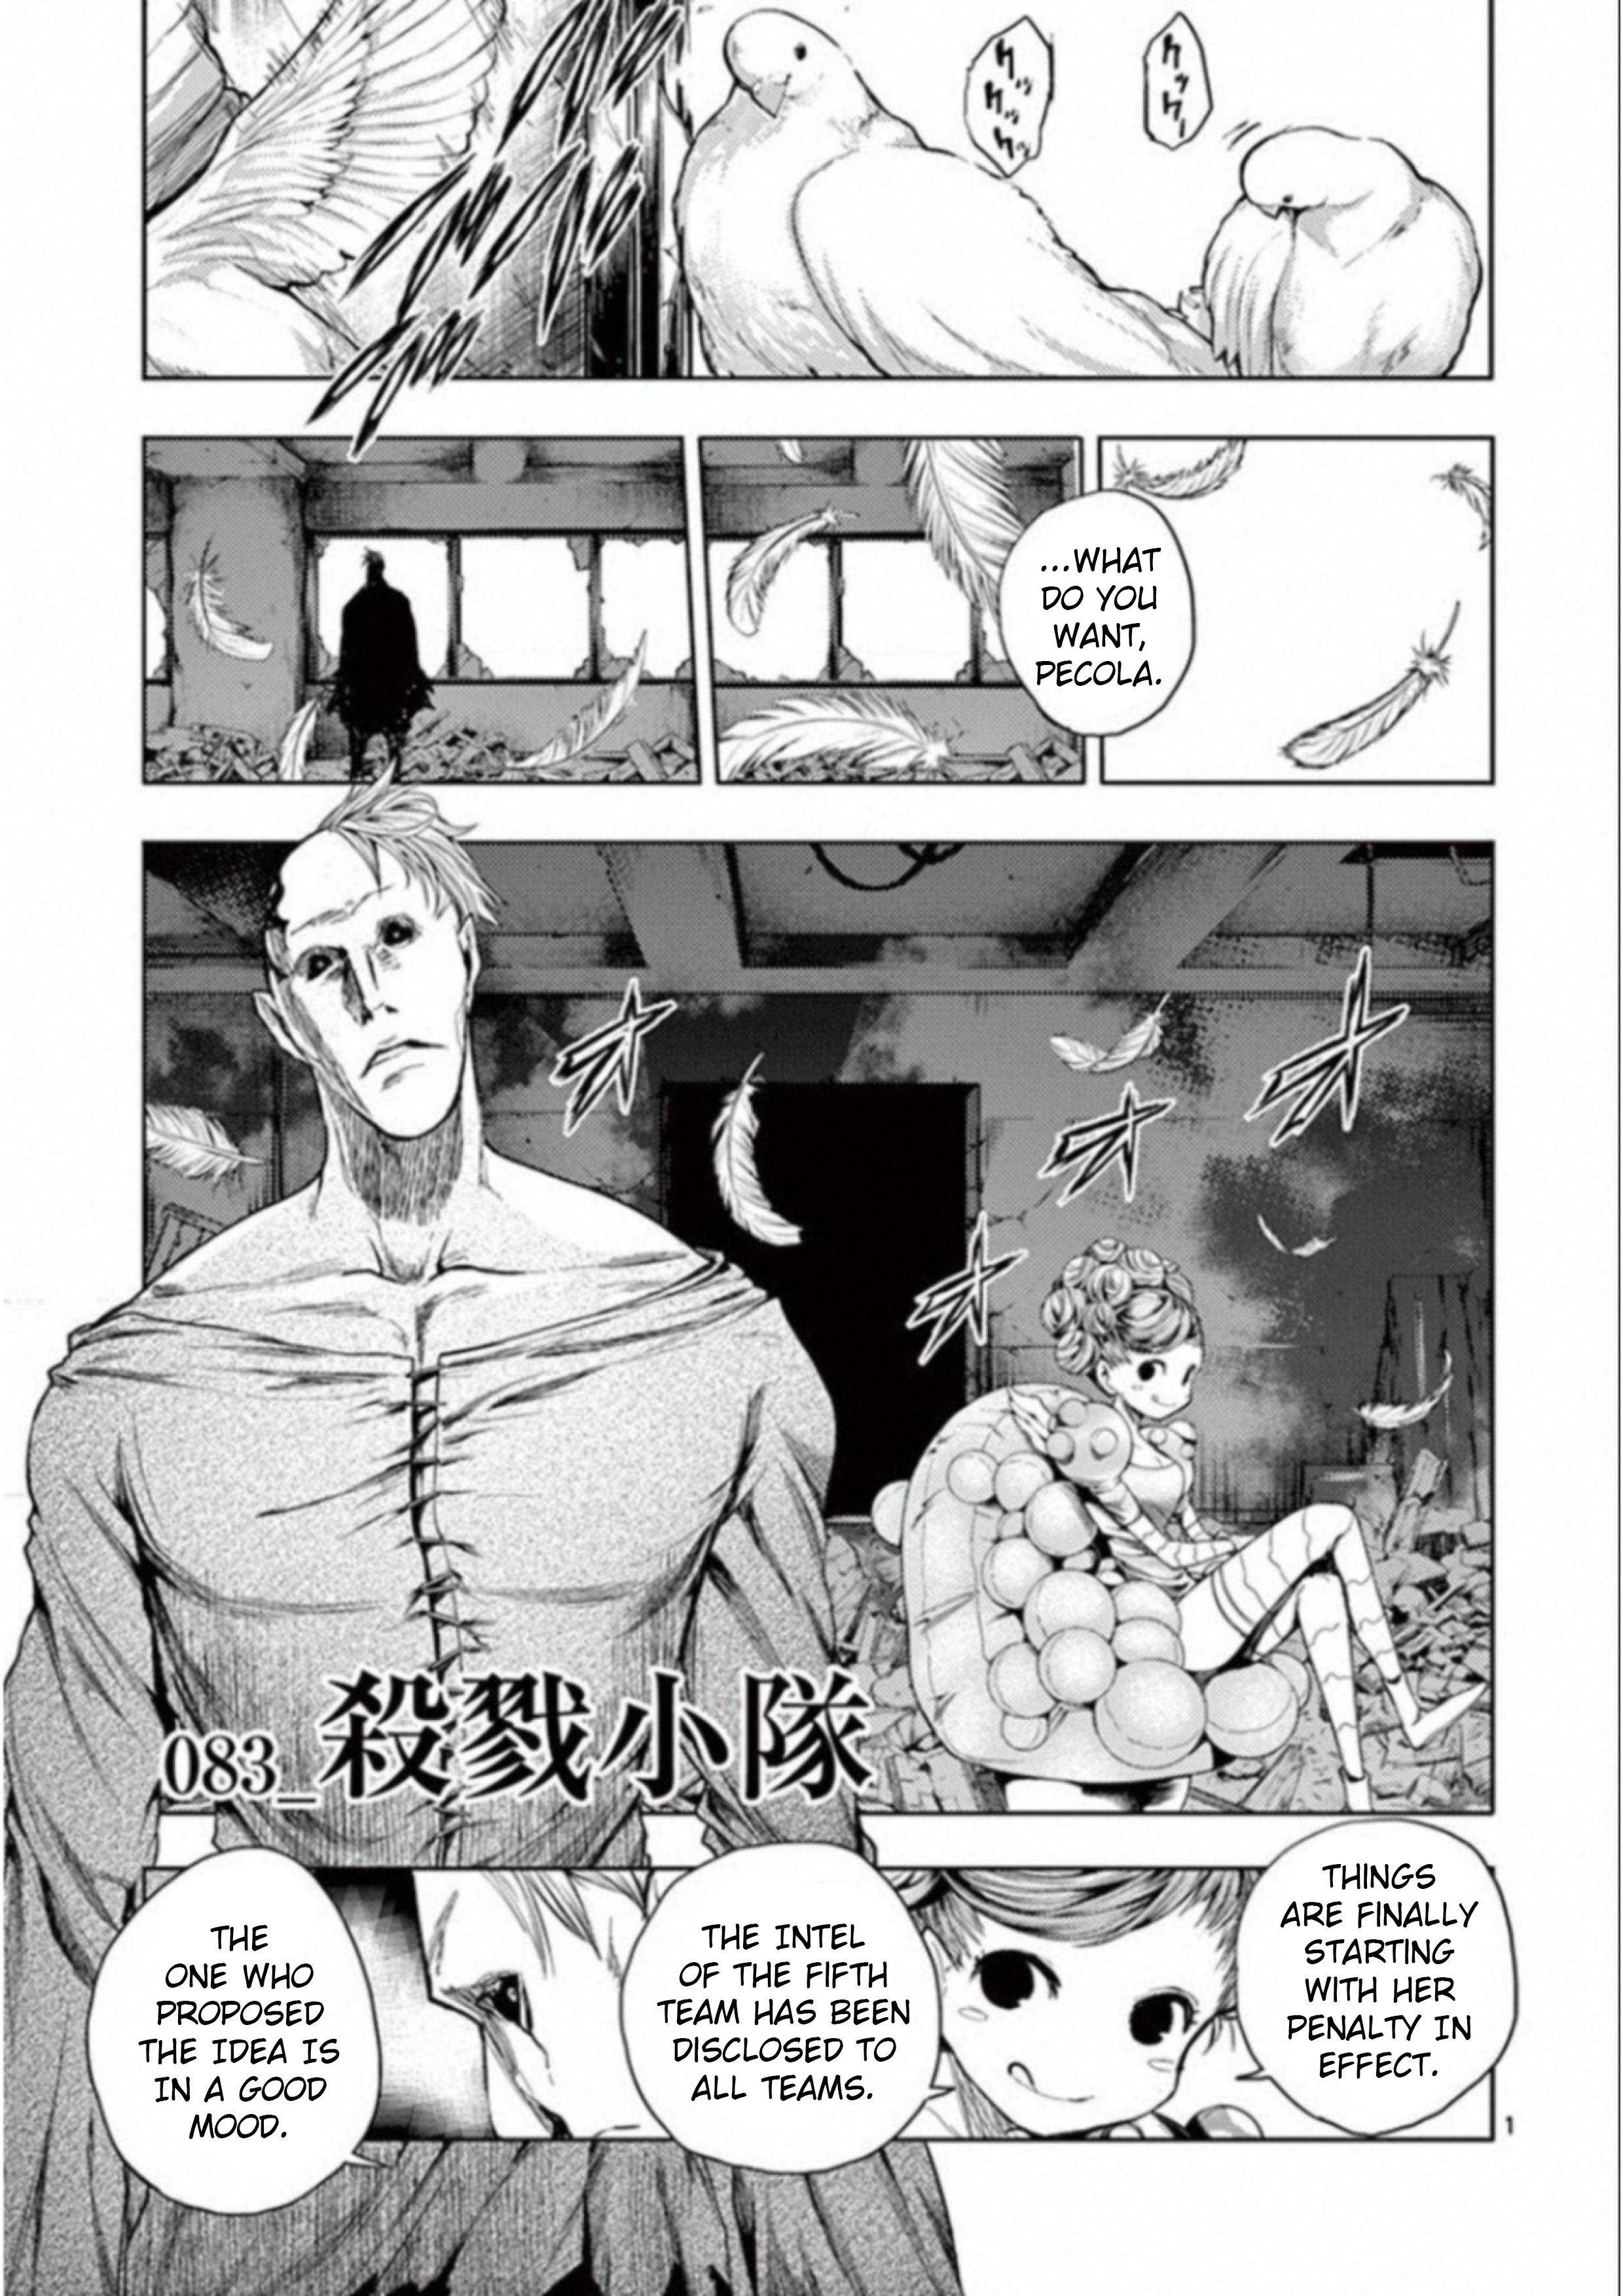 Battle in 5 Seconds After Meeting - chapter 83 - #1